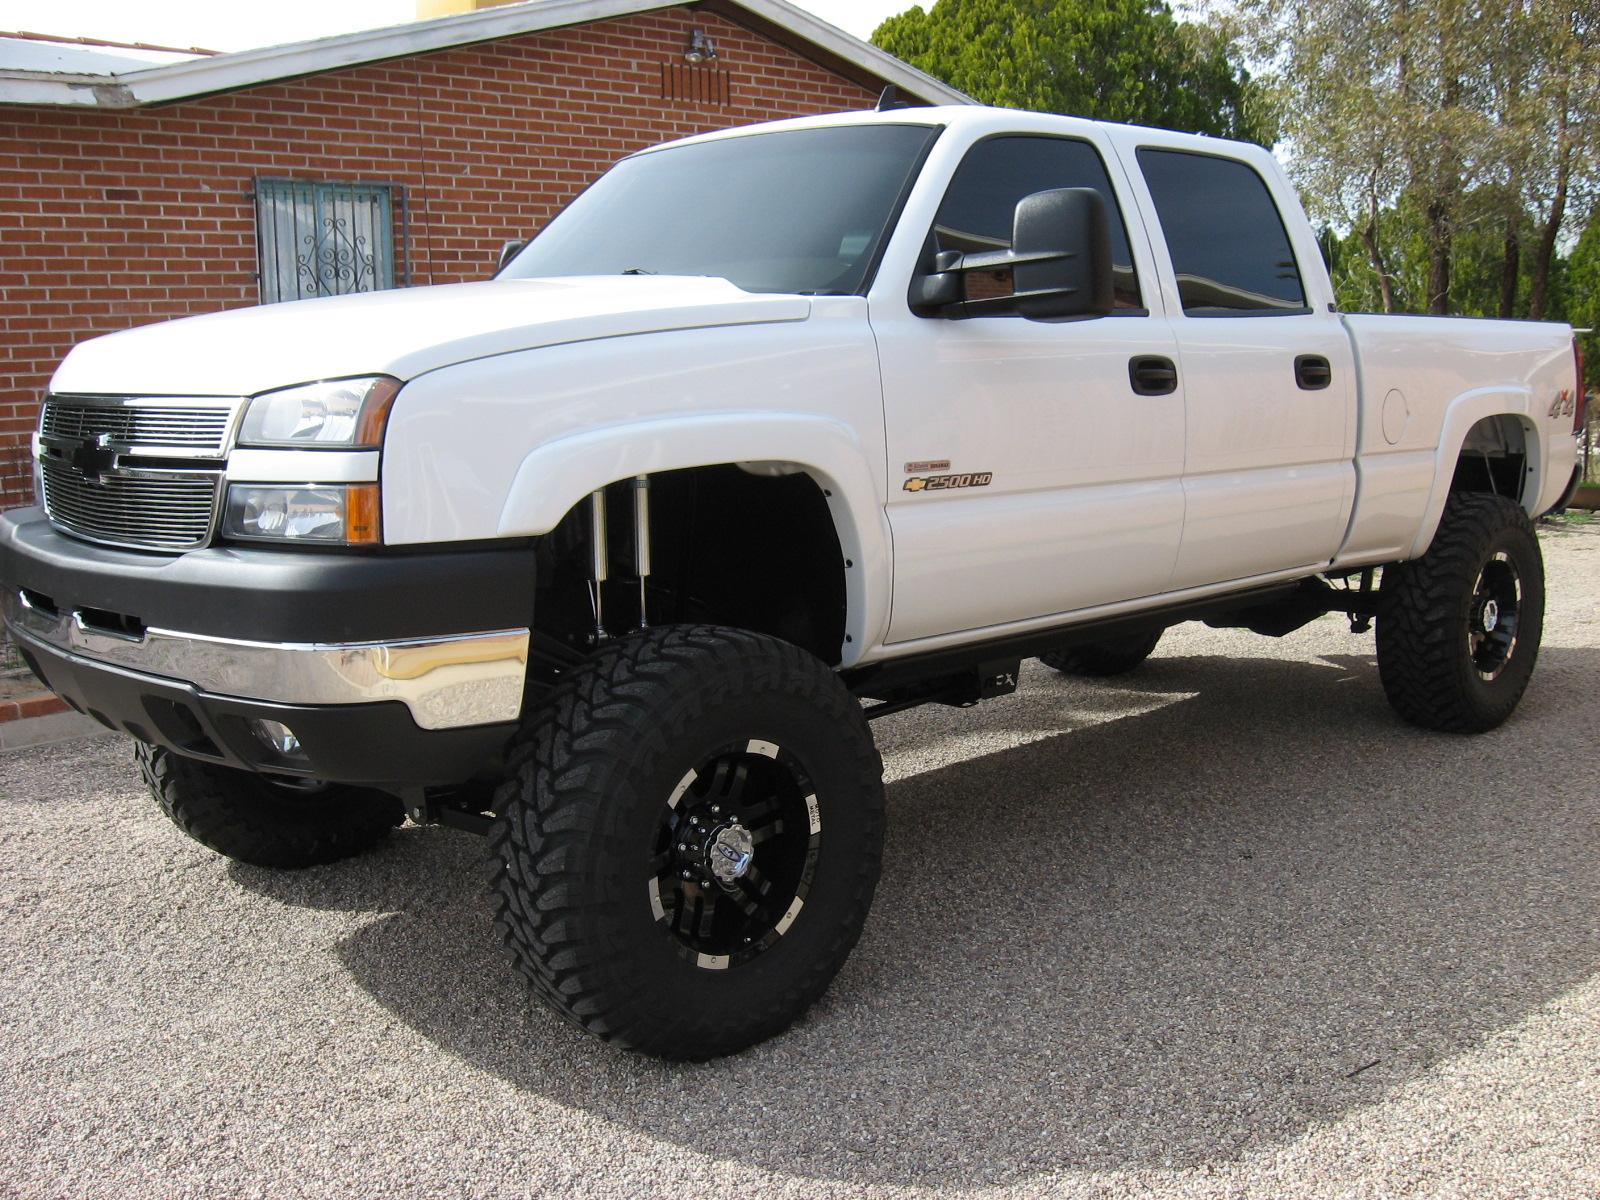 blowupyourcar 2007 chevrolet silverado 2500 hd crew cab. Black Bedroom Furniture Sets. Home Design Ideas